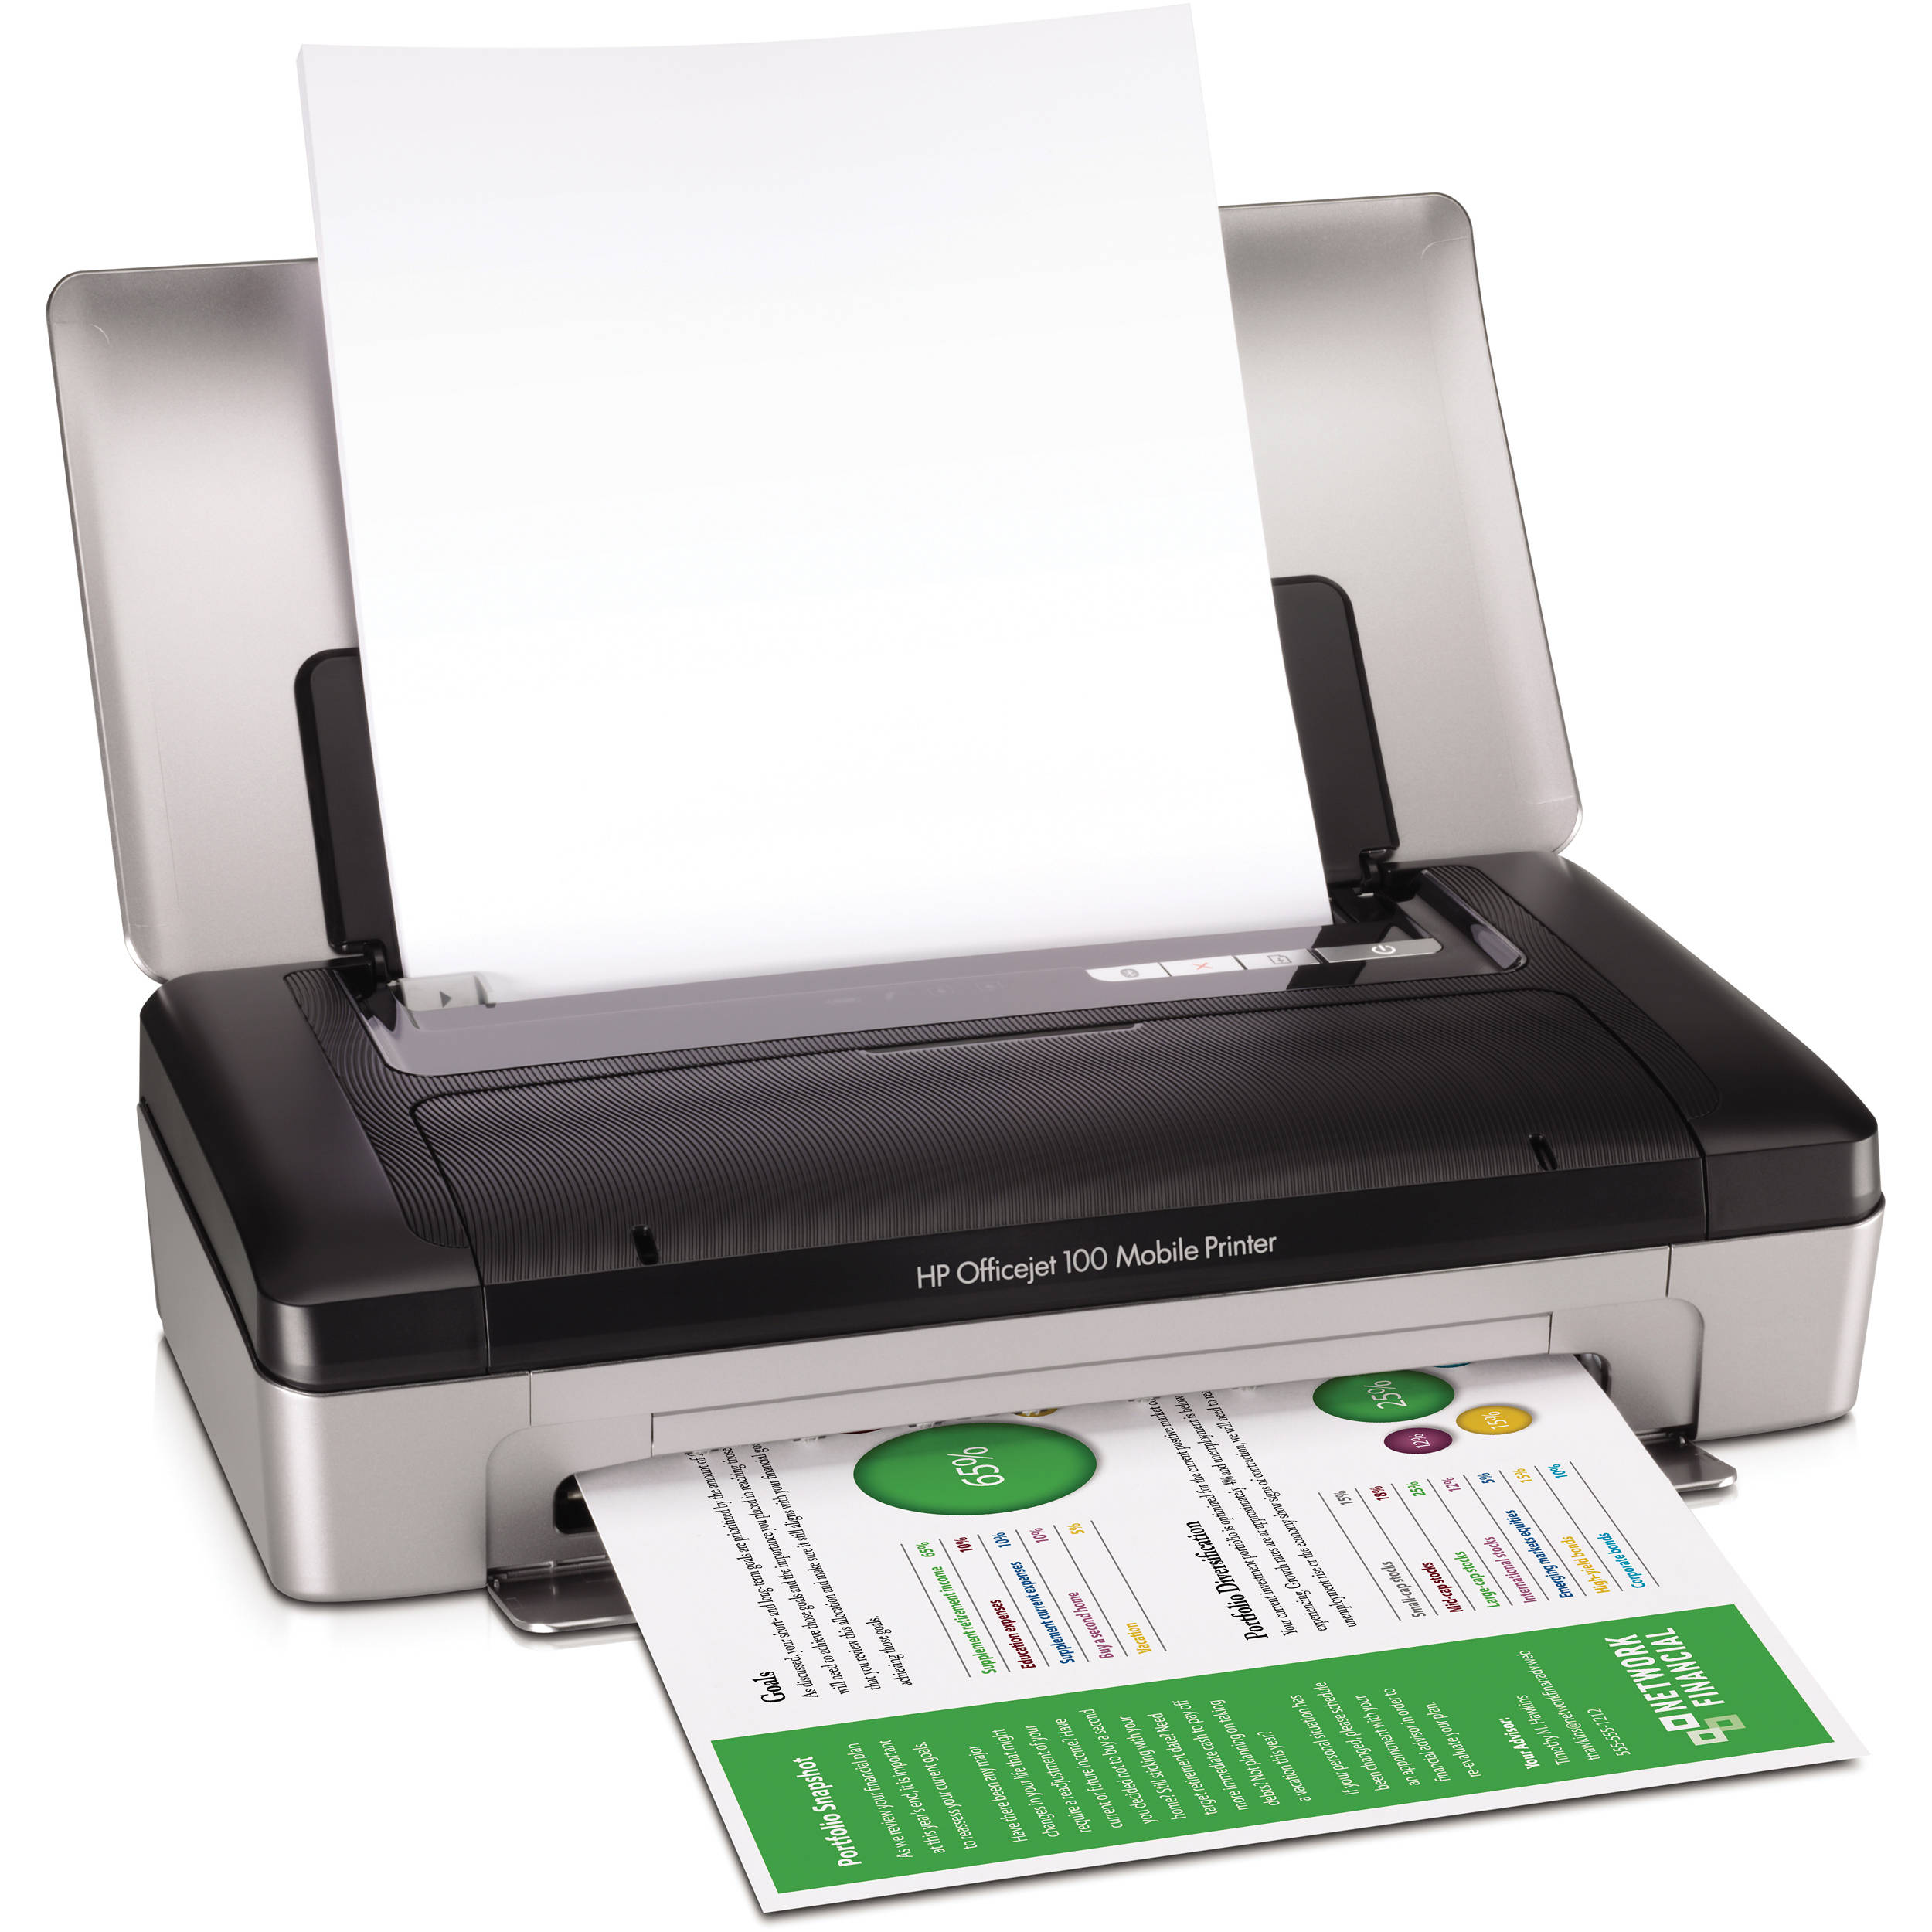 Hp Officejet 100 Mobile Printer CN551A 2 Usb Ports Used Free Shipping No Inks